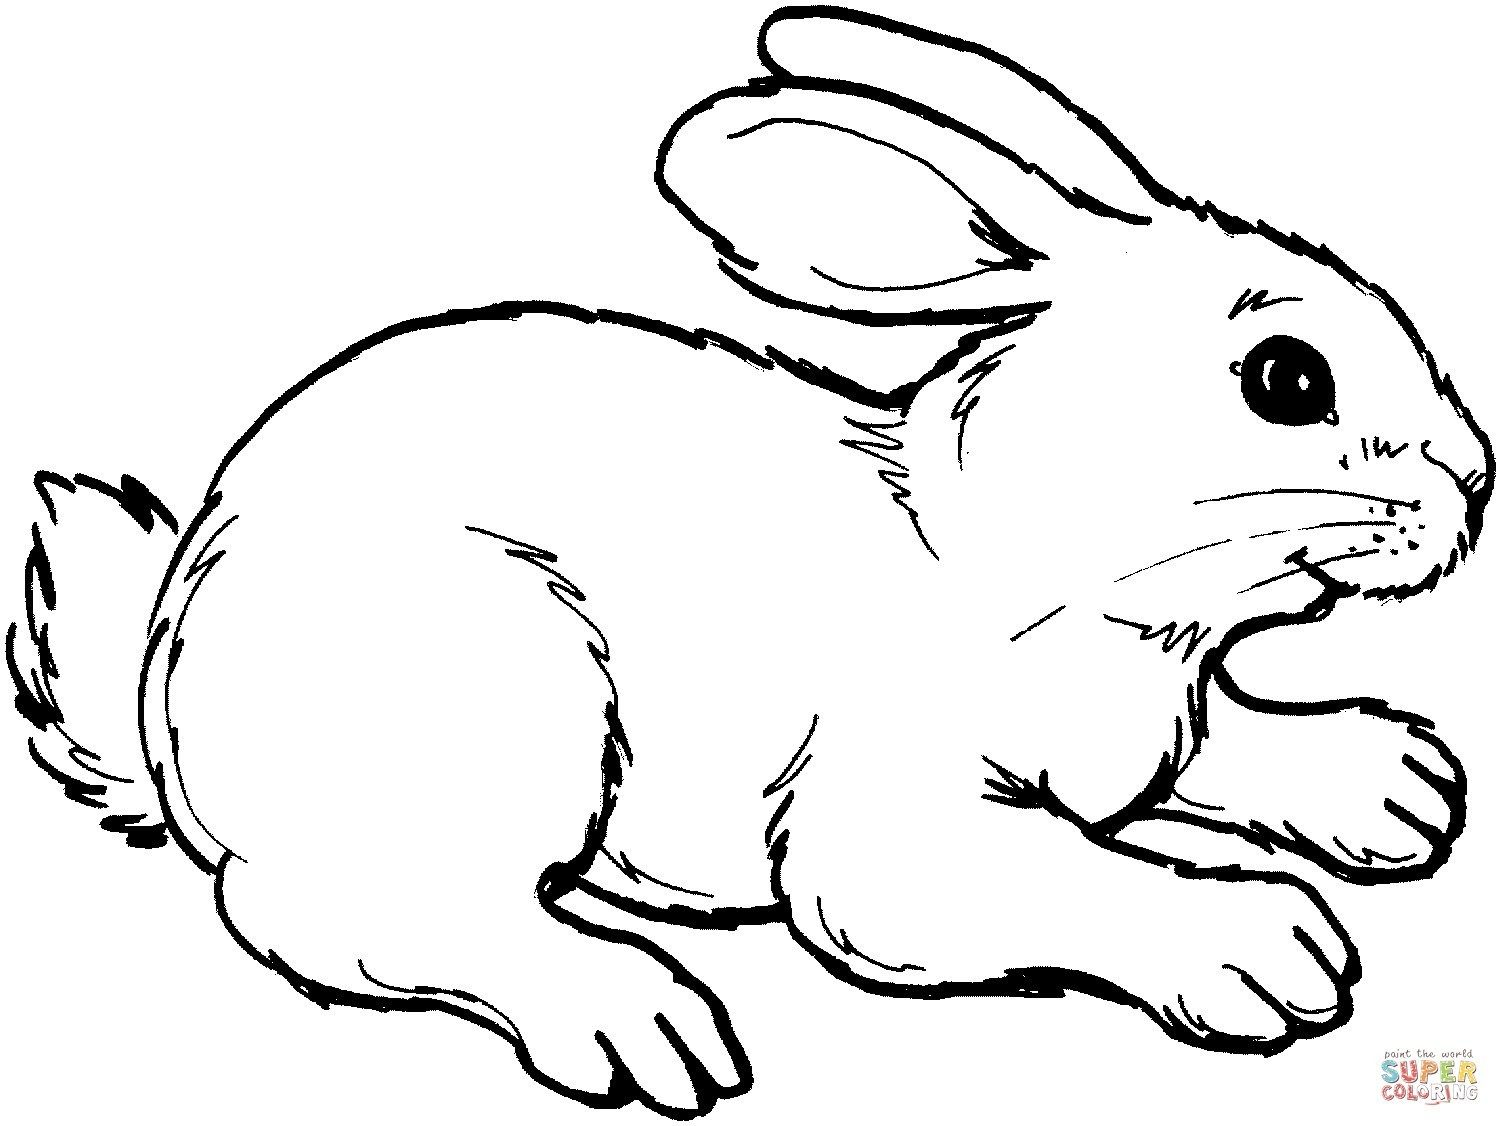 Coloring Pages Bunny Rabbit Coloring Page 04 Animals Ezentity Gt Others Free Printable Colorin Bunny Coloring Pages Rabbit Colors Coloring Pages For Kids